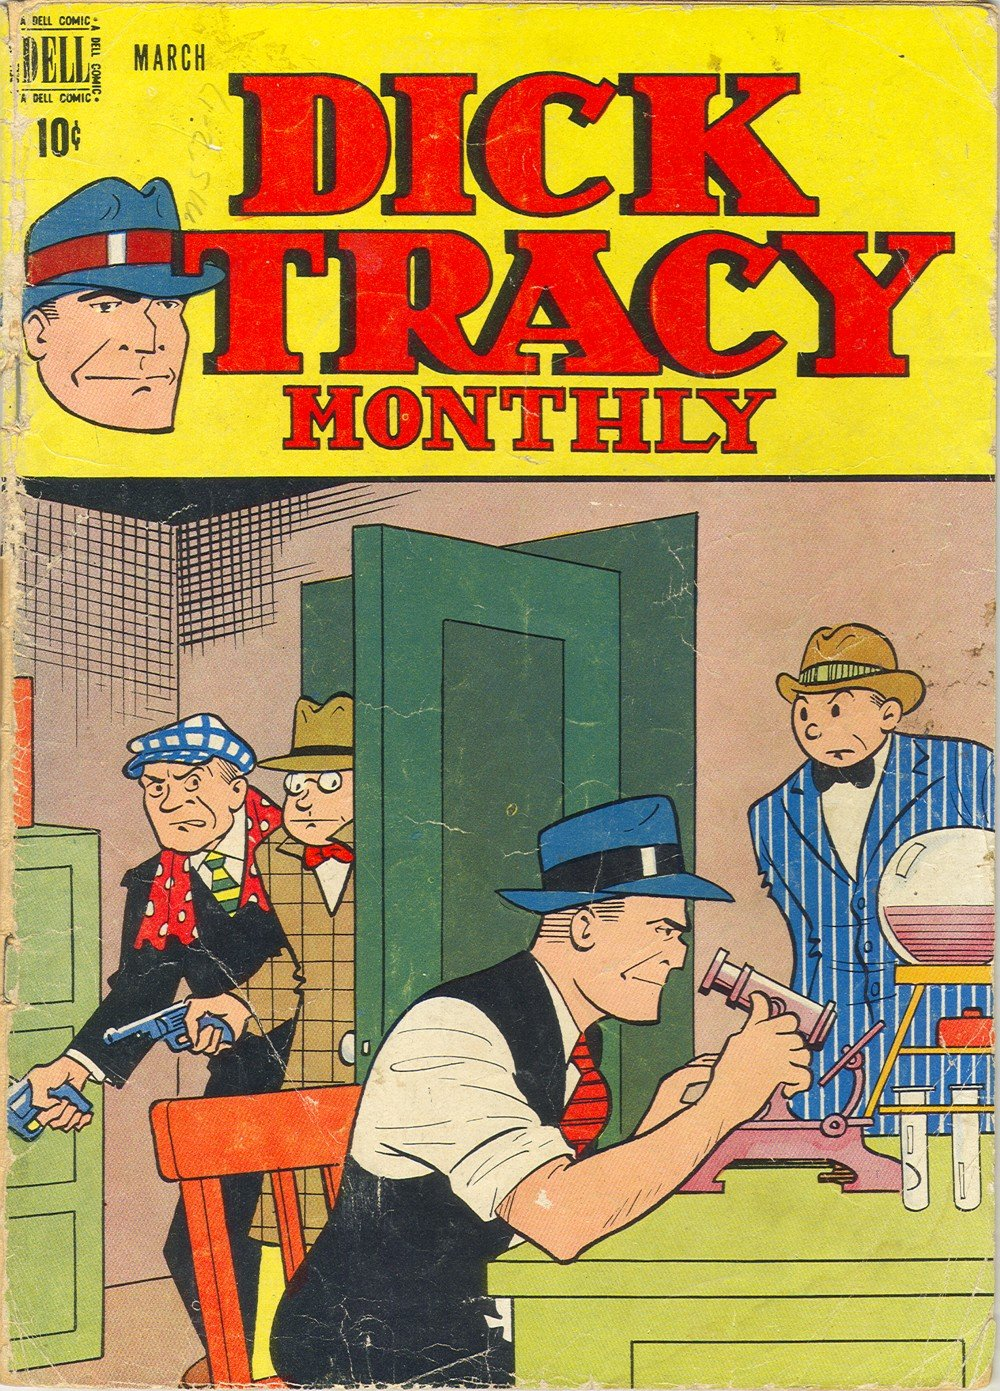 Dick Tracy- Monthy [Dell] V1 0003.jpg